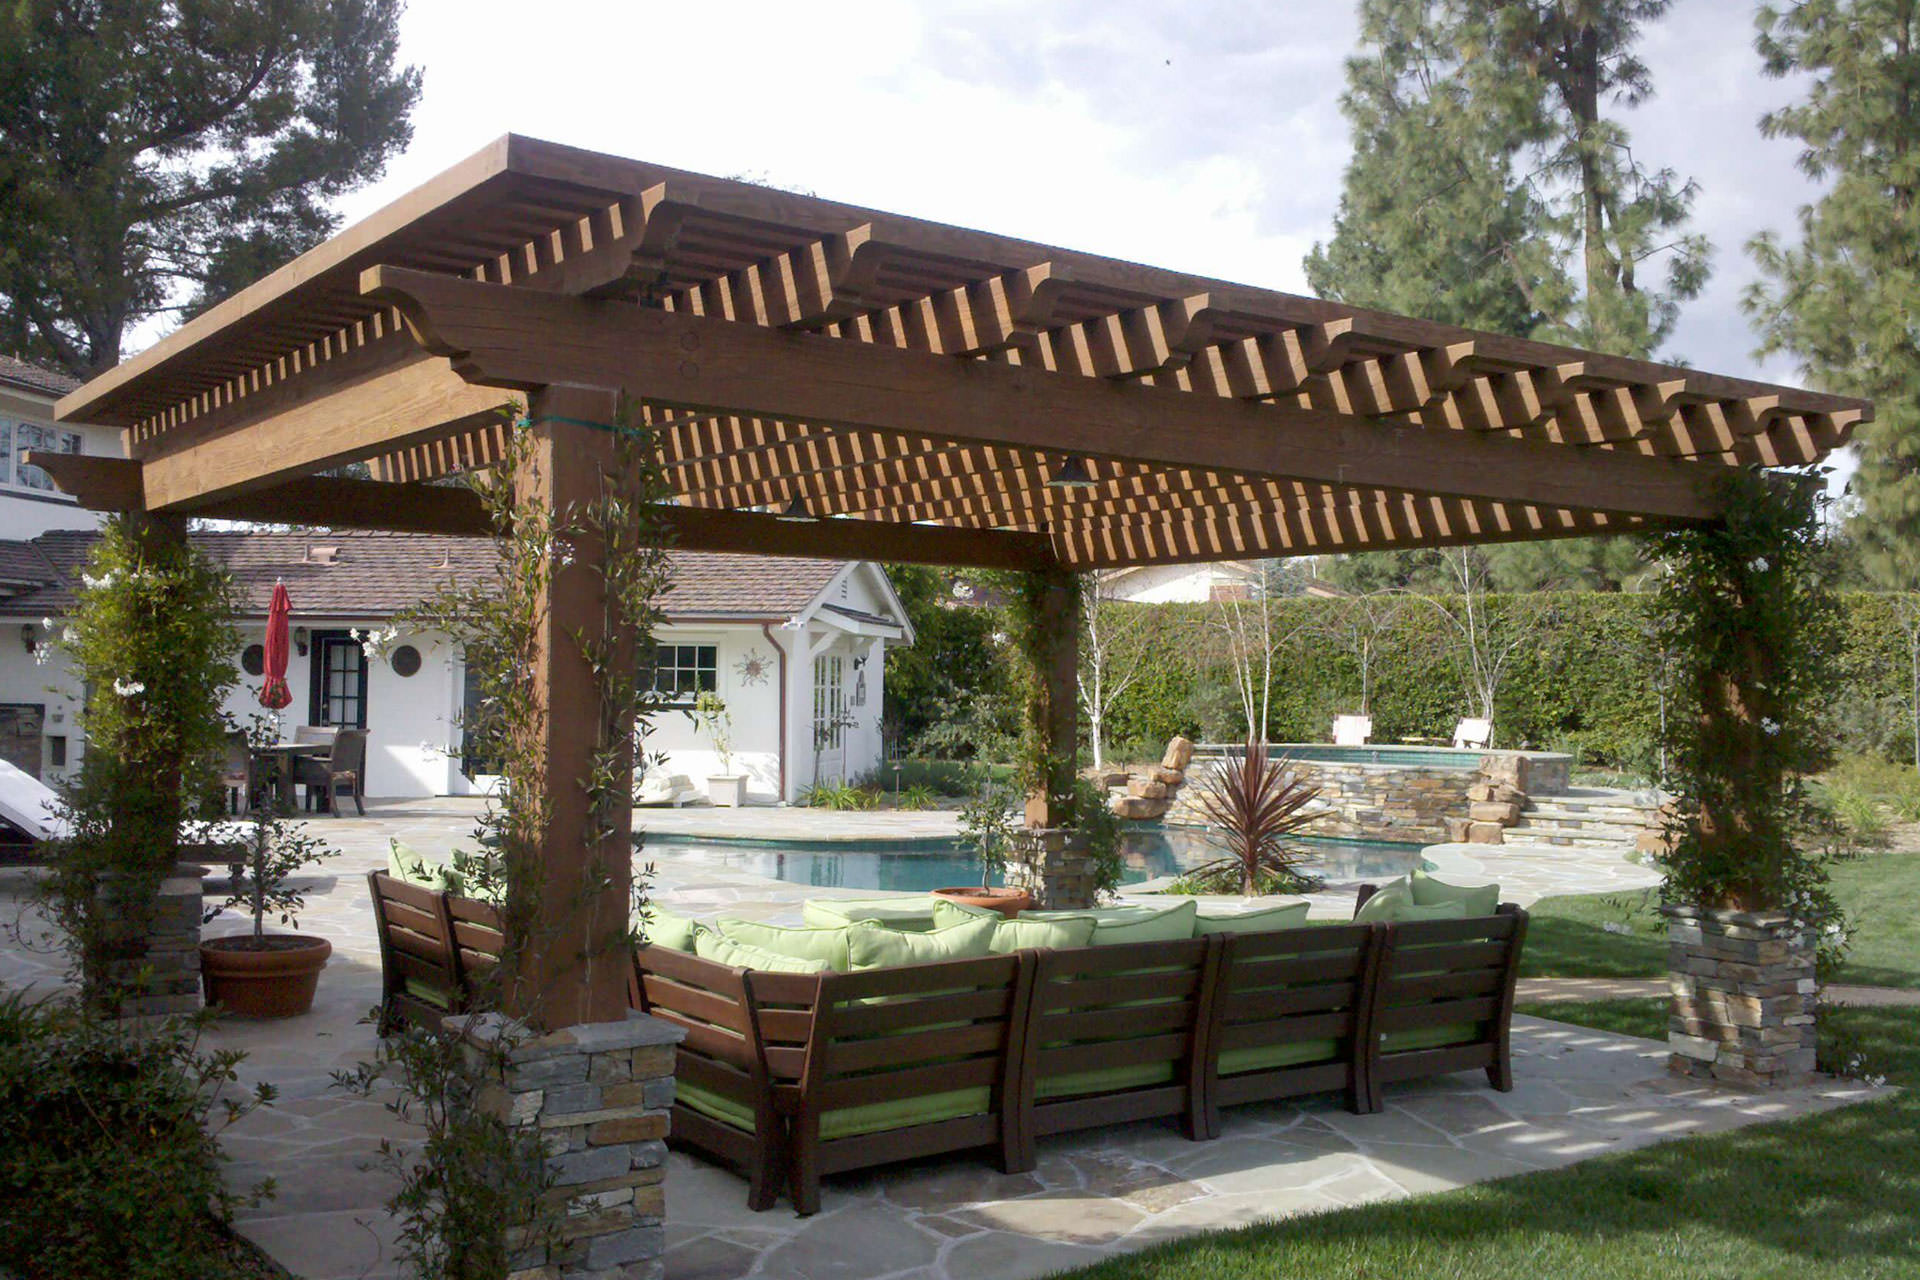 ShadeFX Canopies